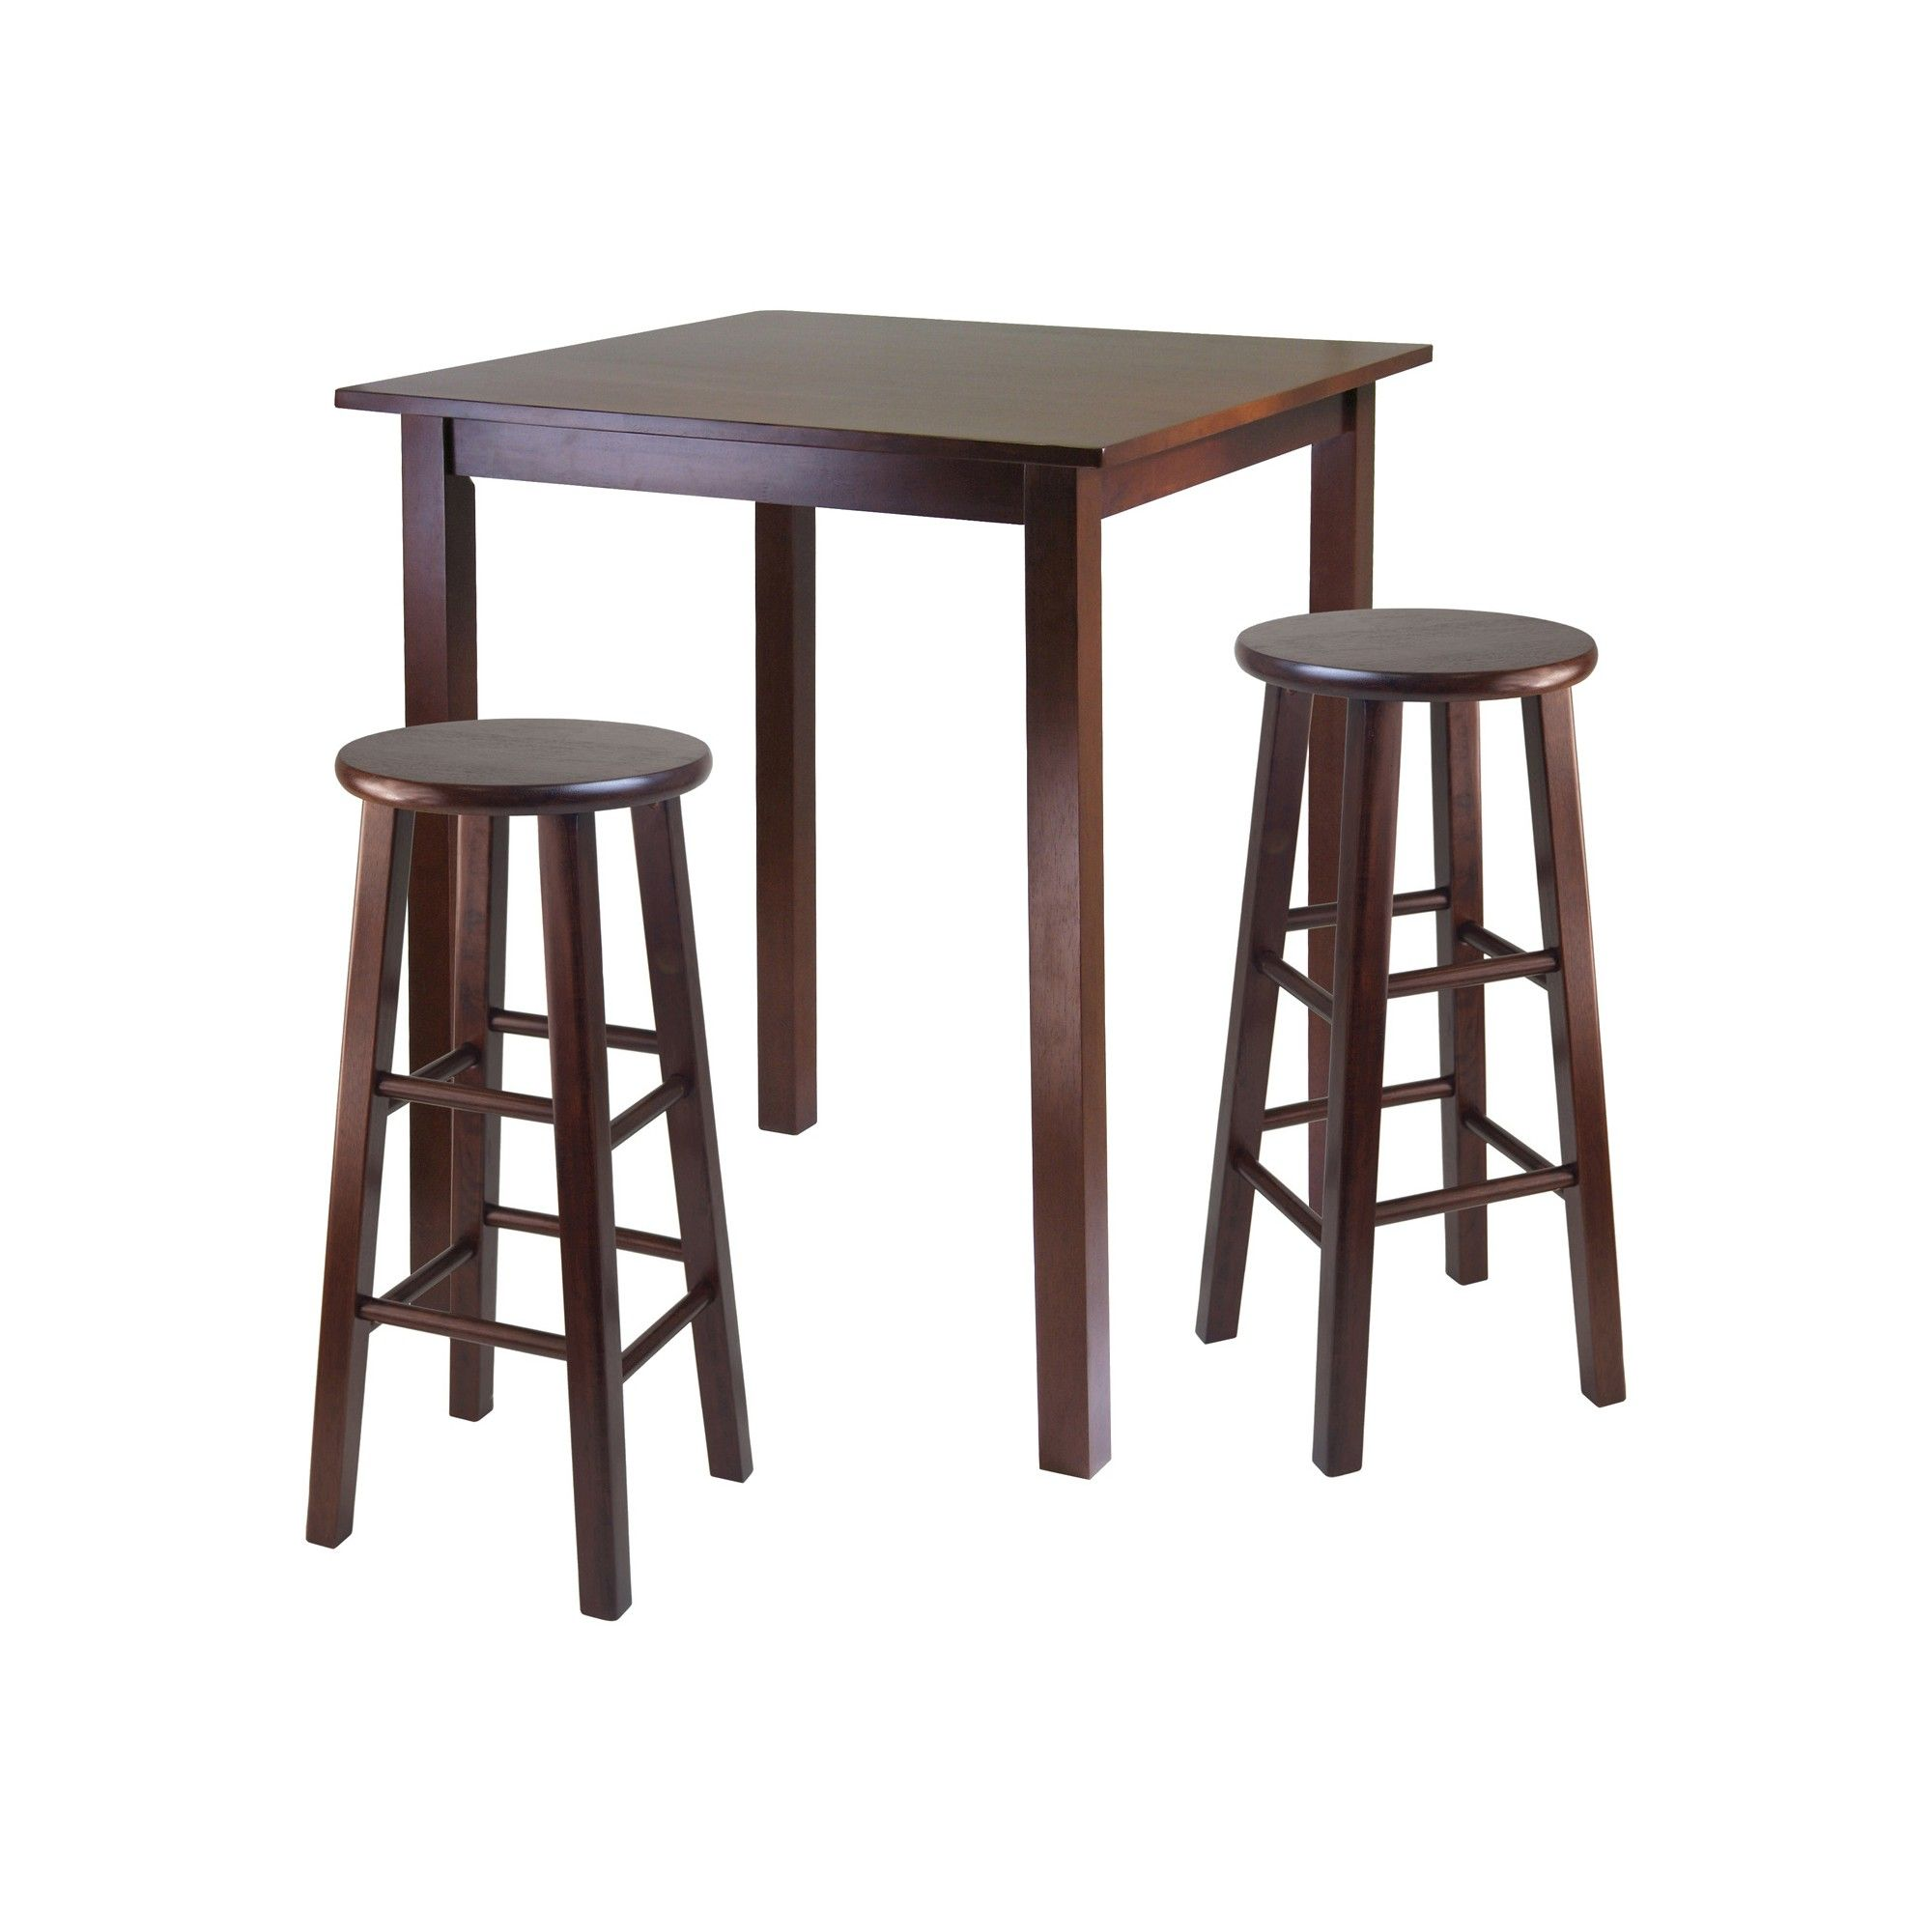 3 piece parkland set high table with bar stools wood walnut brown